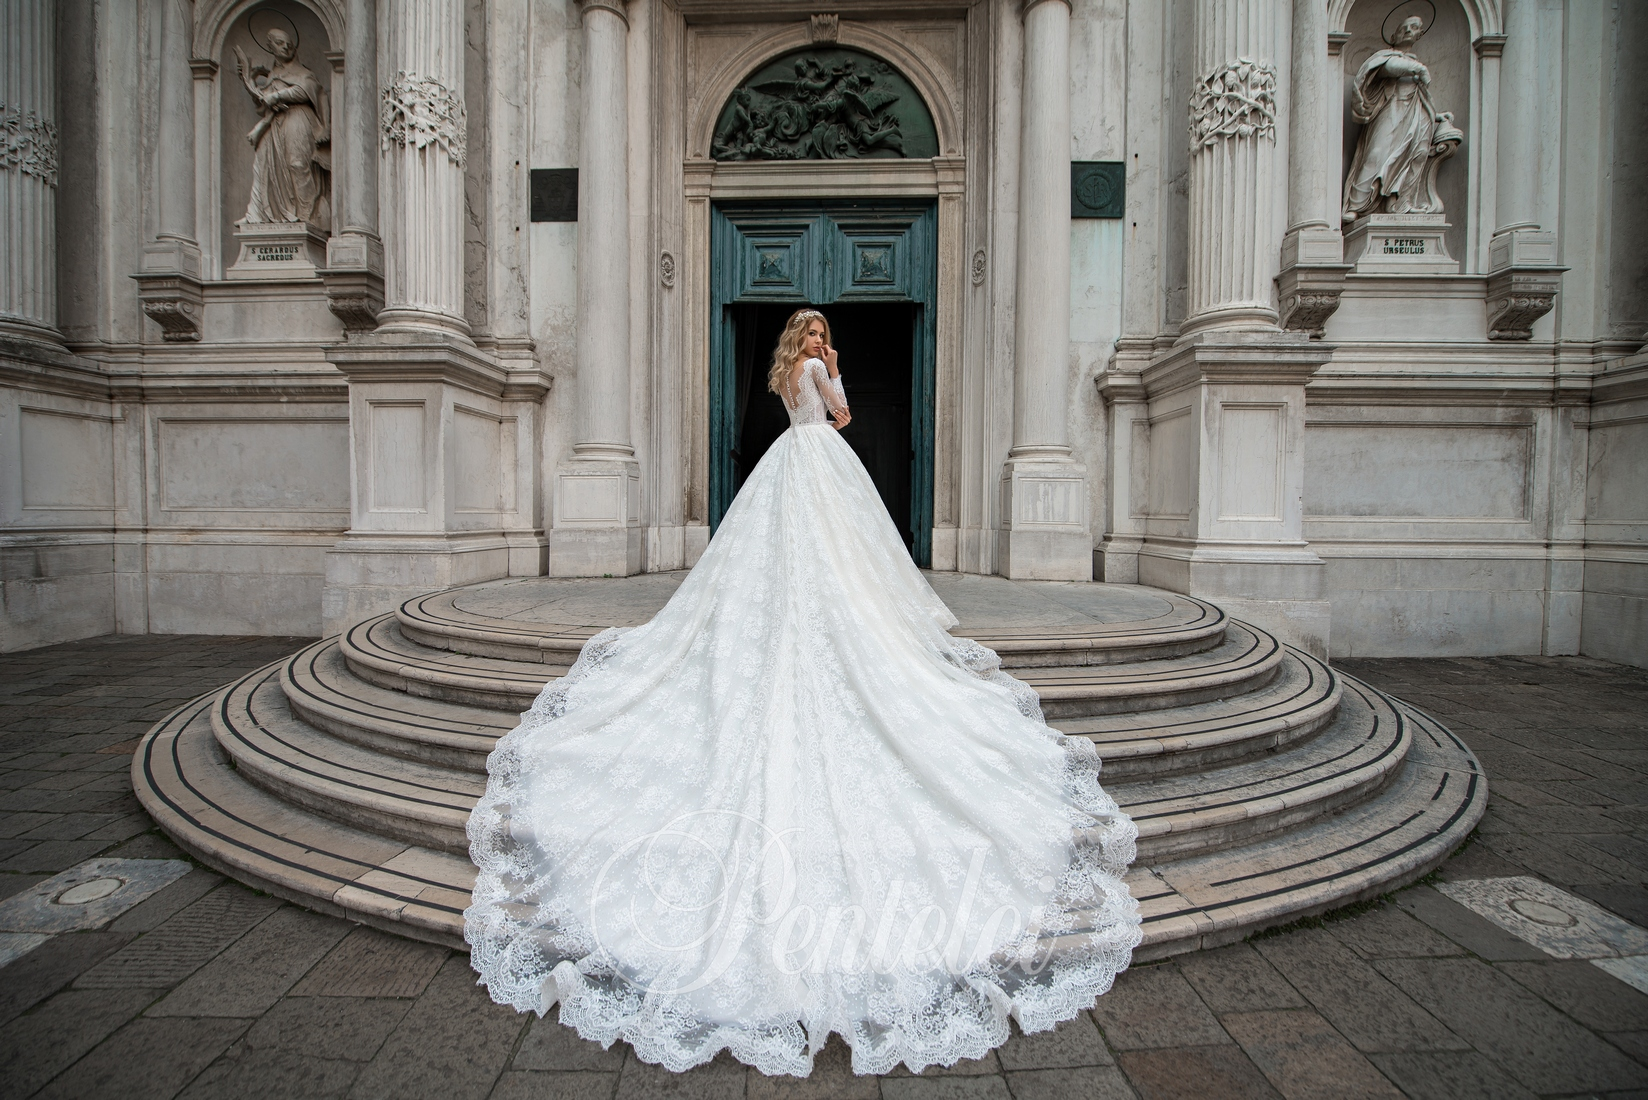 лbest wedding images photos